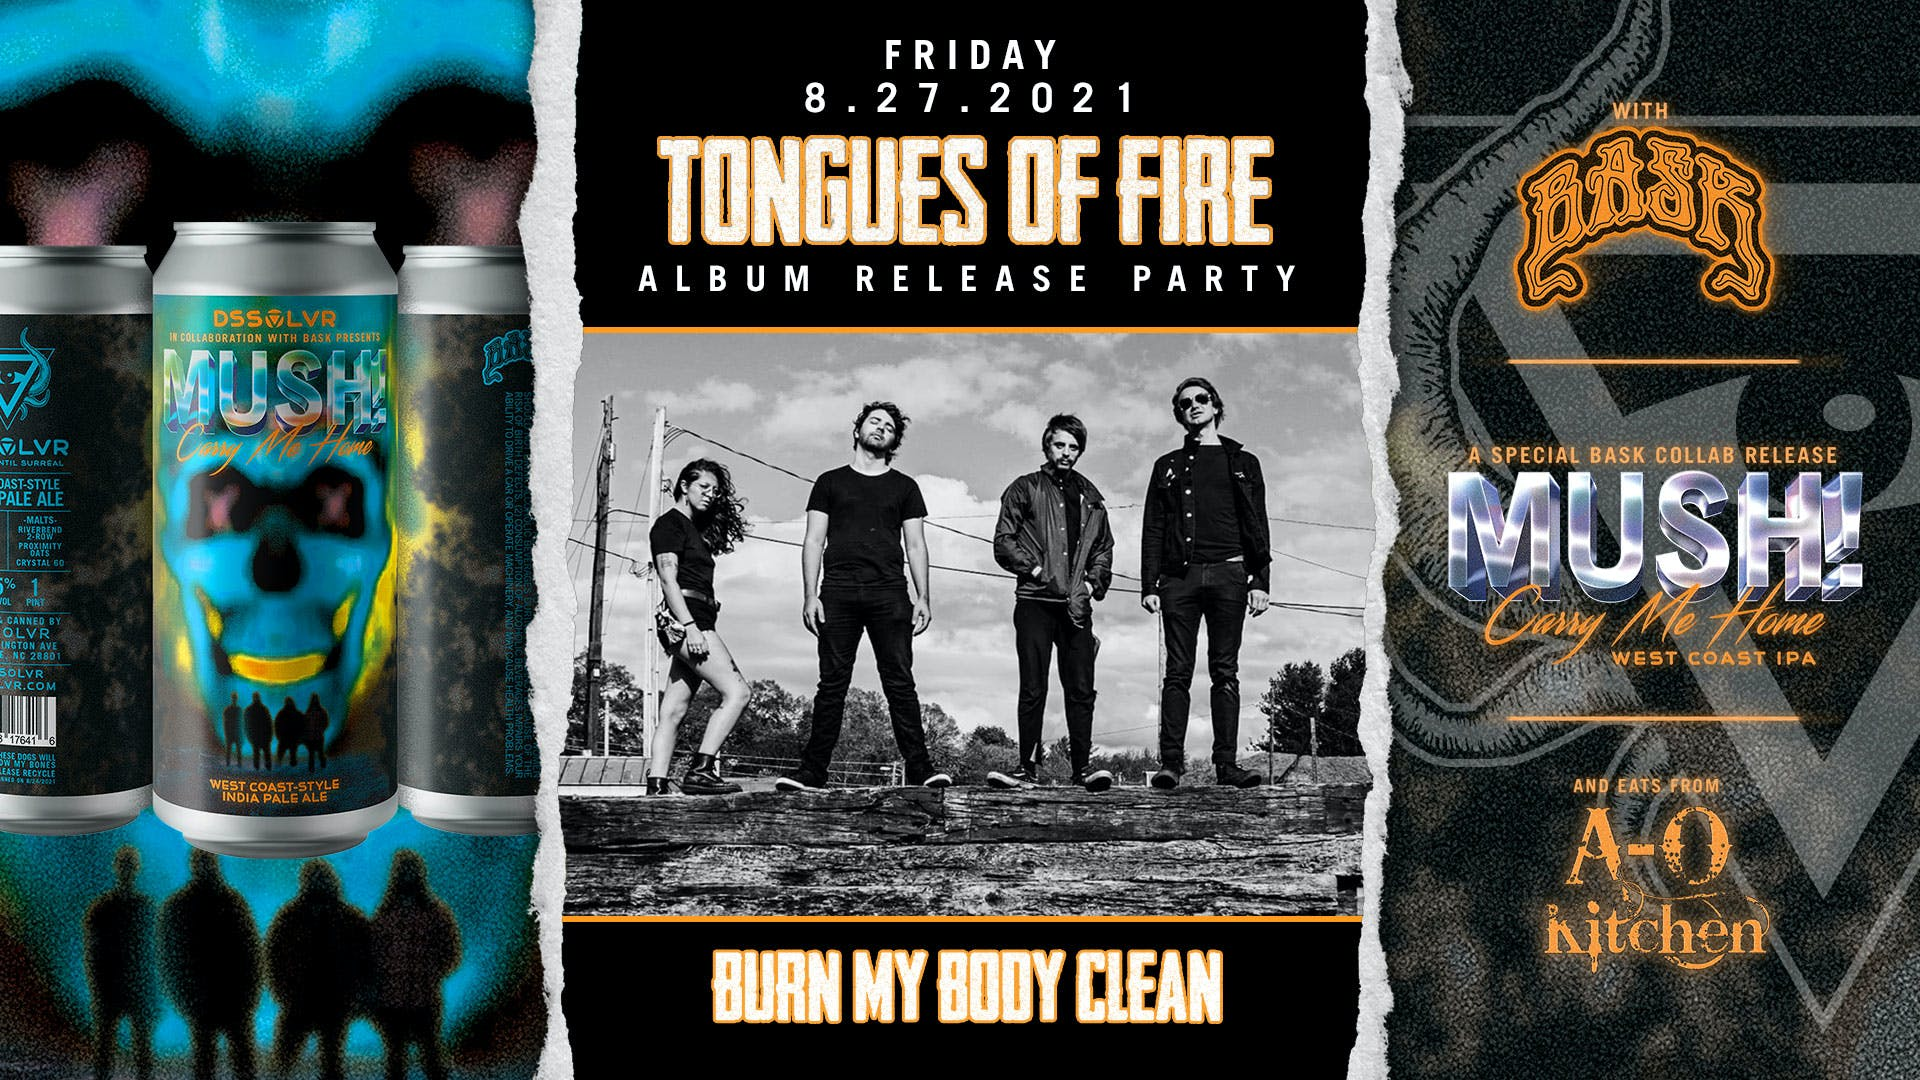 tongues-of-bask-FB-Event